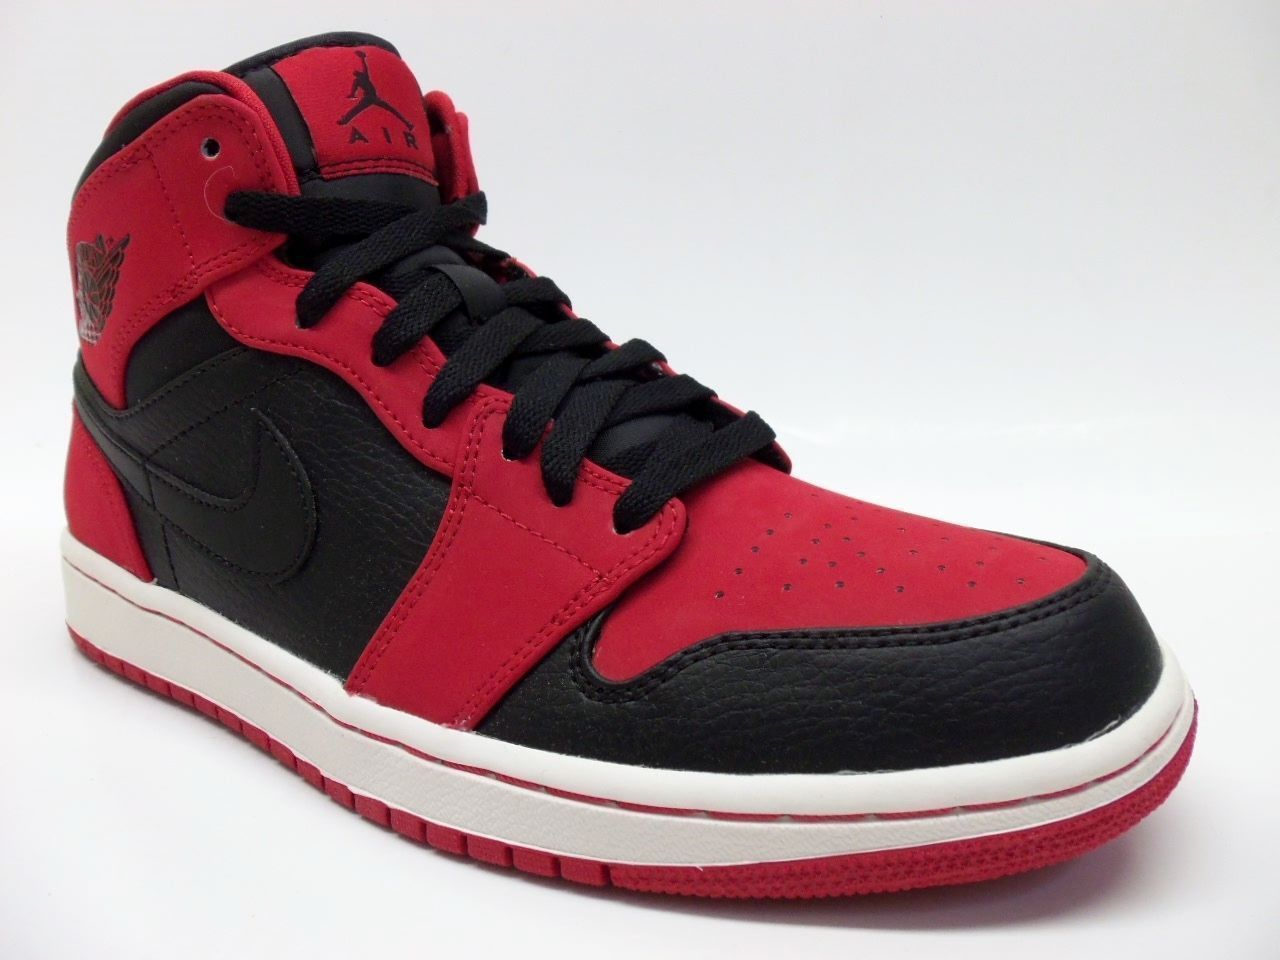 super popular 0059a 85cb4 Nike Air Jordan 1 Mid